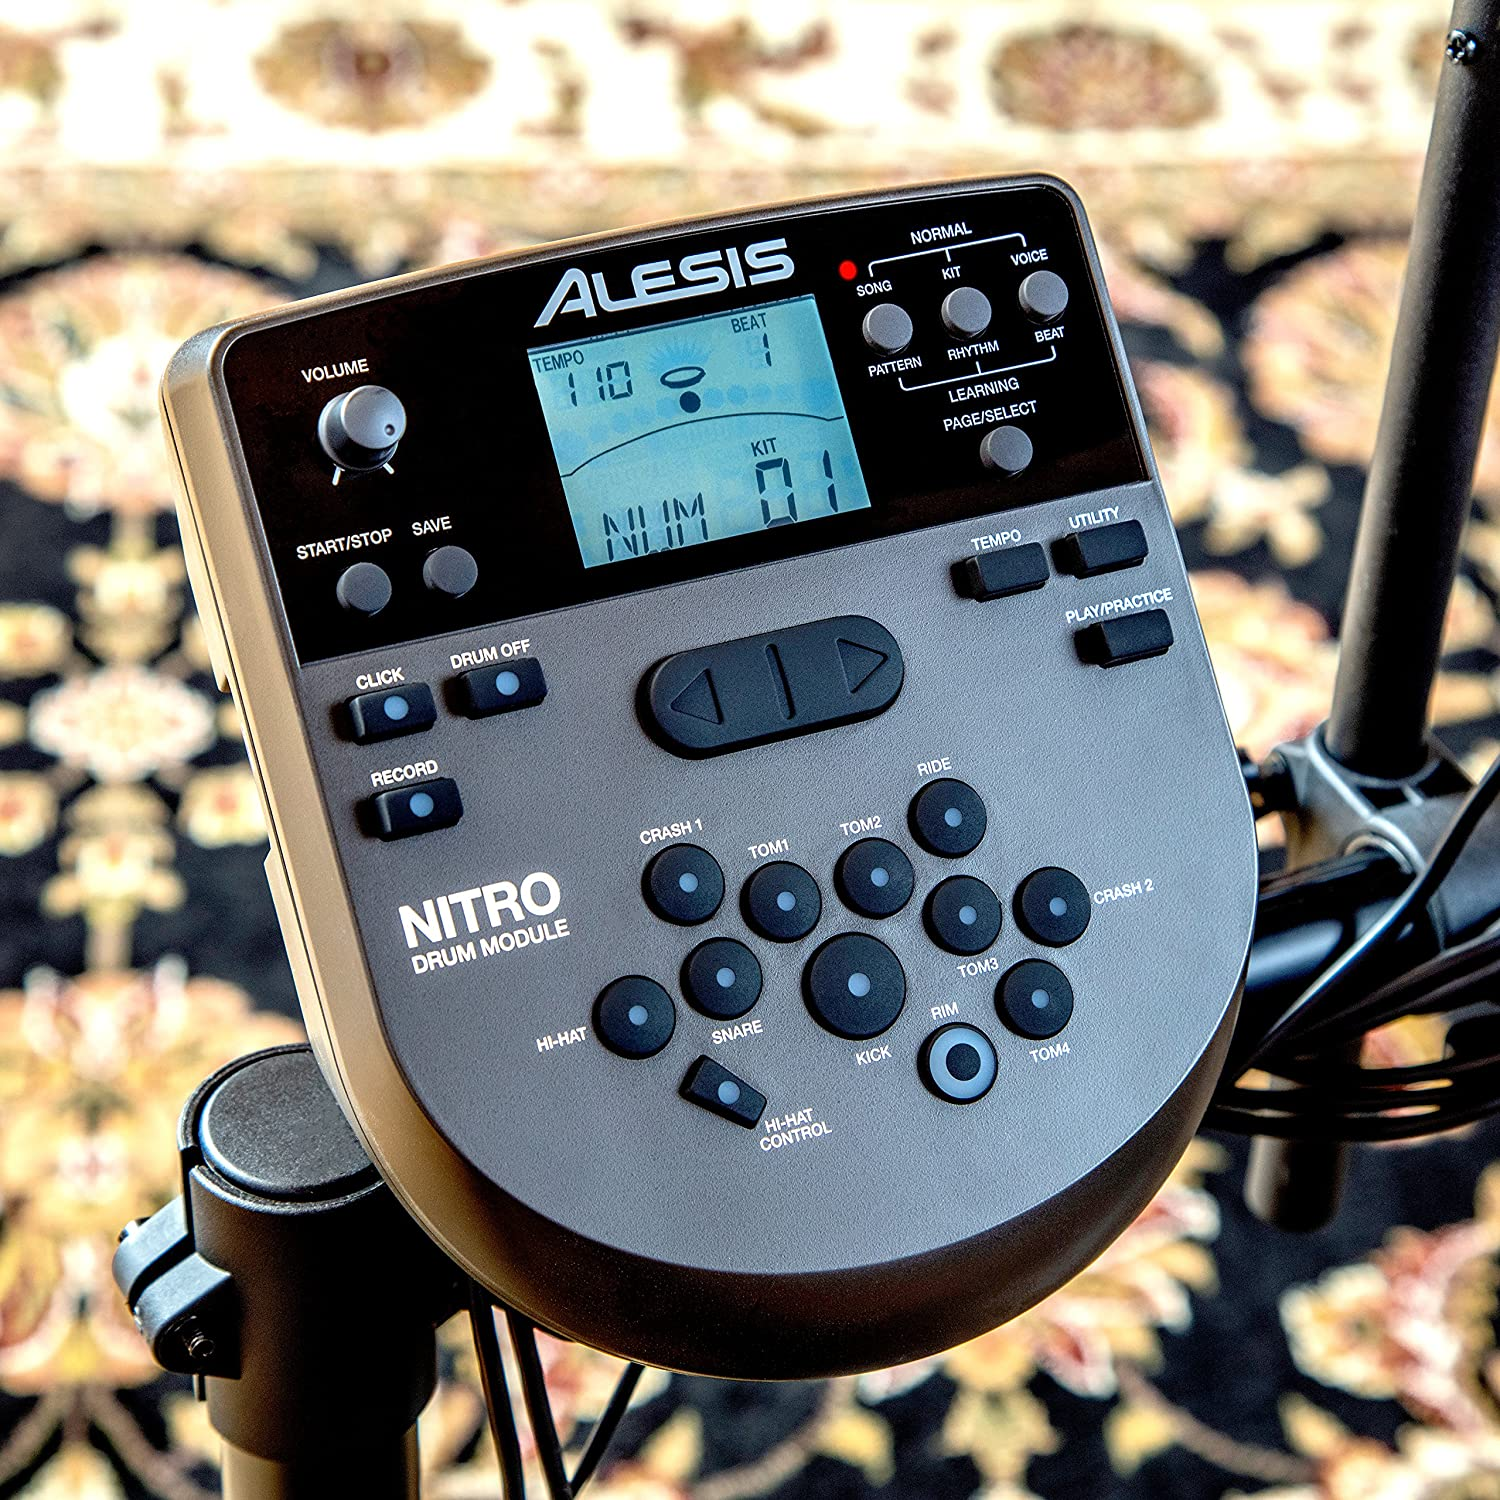 Nitro drum kit module for alesis nitro mesh kit